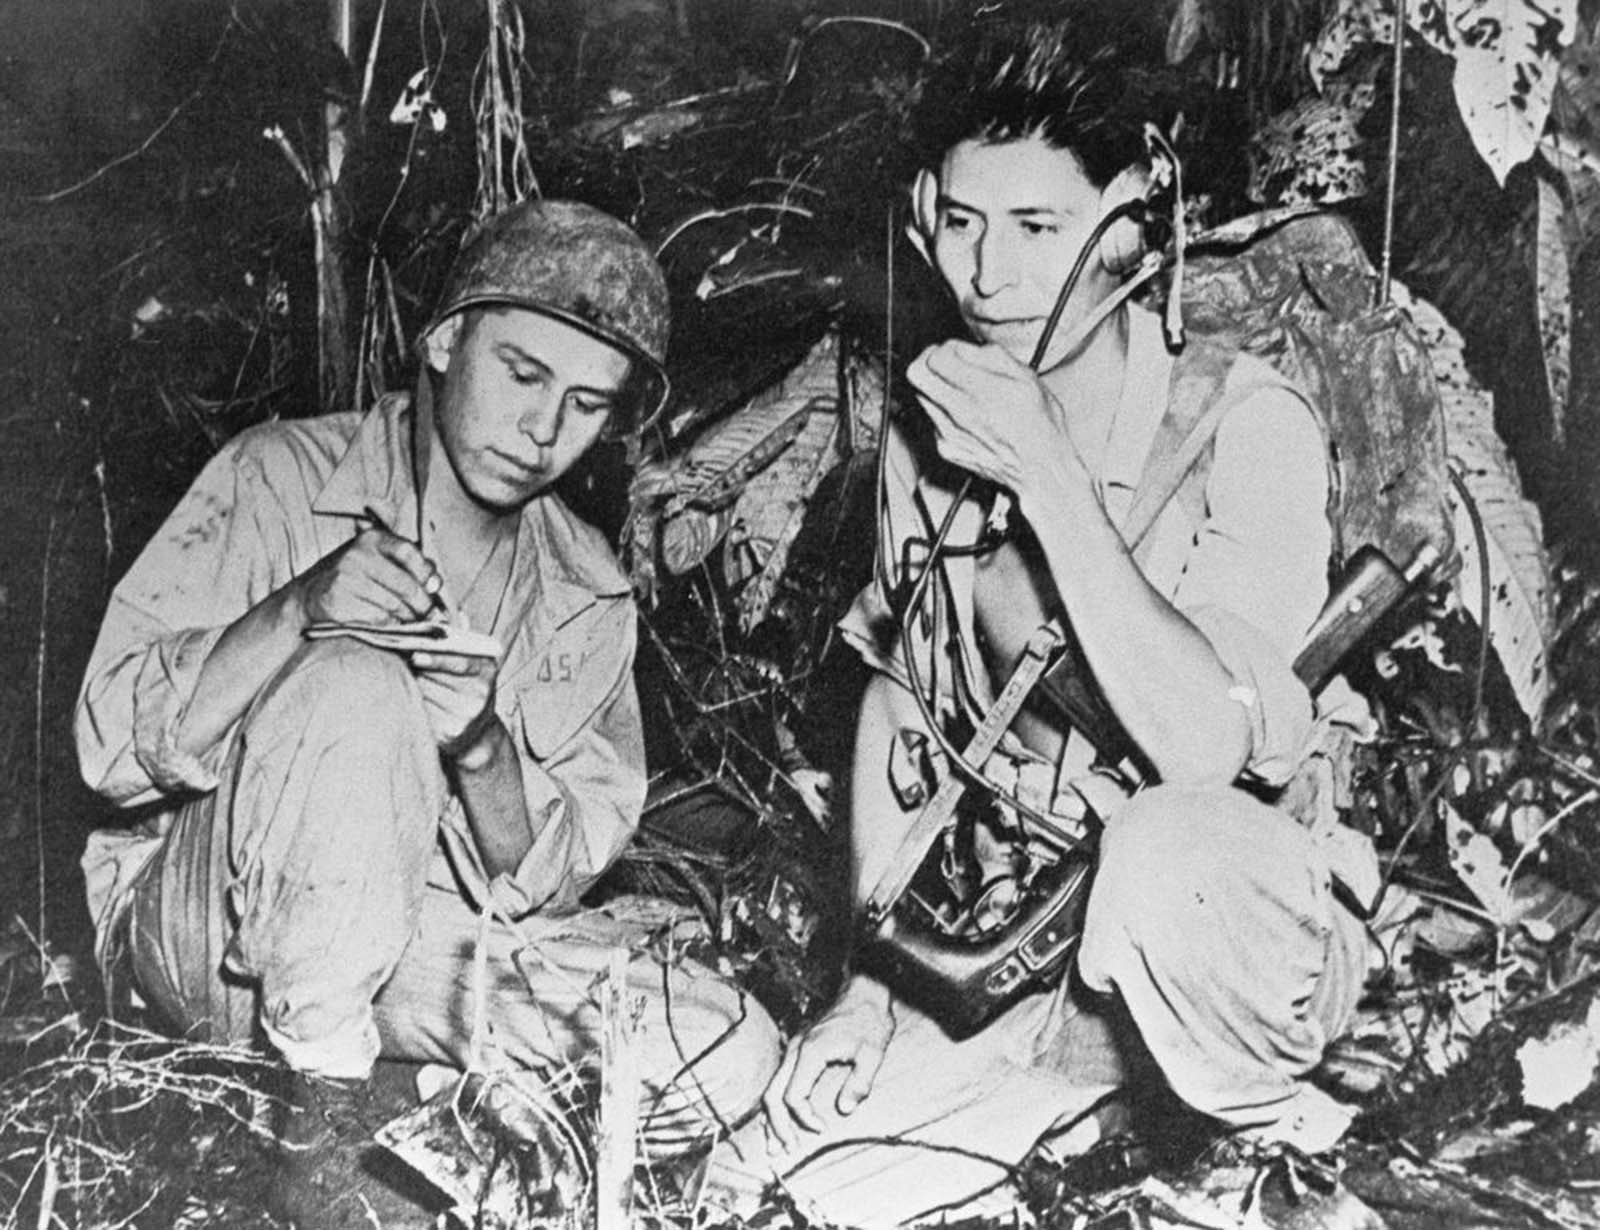 Code talkers transmit messages during the Battle of Bougainville. 1943.